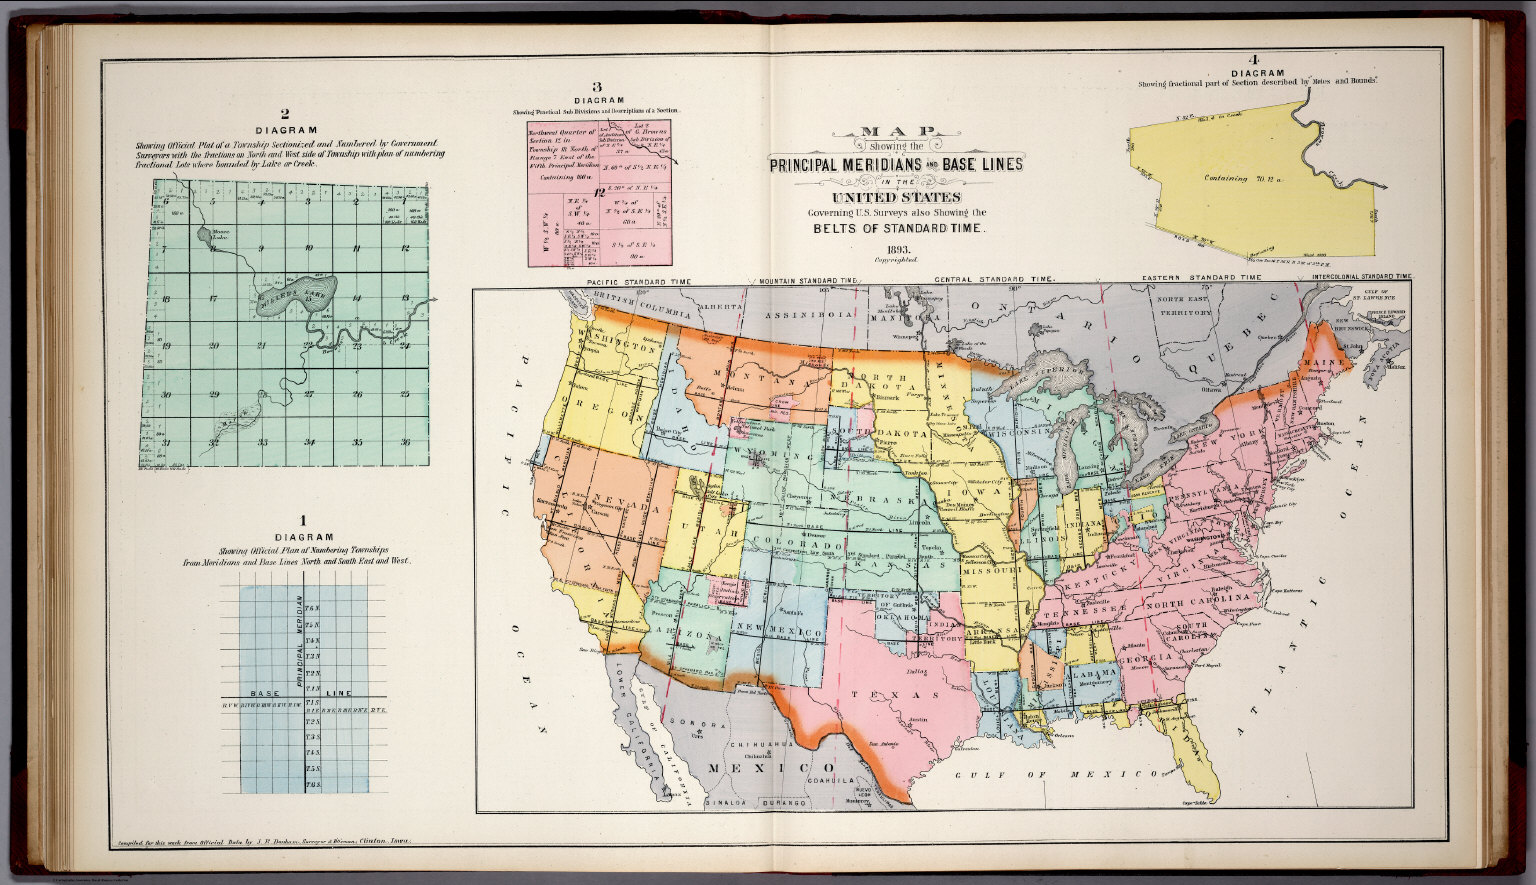 Prinl Meridians and Base Lines in the United States. Standard ... on n. america time zone map, time and date map, tennessee central meridian map, asia time zone map, nebraska time zone map, world time zone map, us mountain time map, us canada time map, us time zone map, us daylight savings time map, zoomable time zone map,